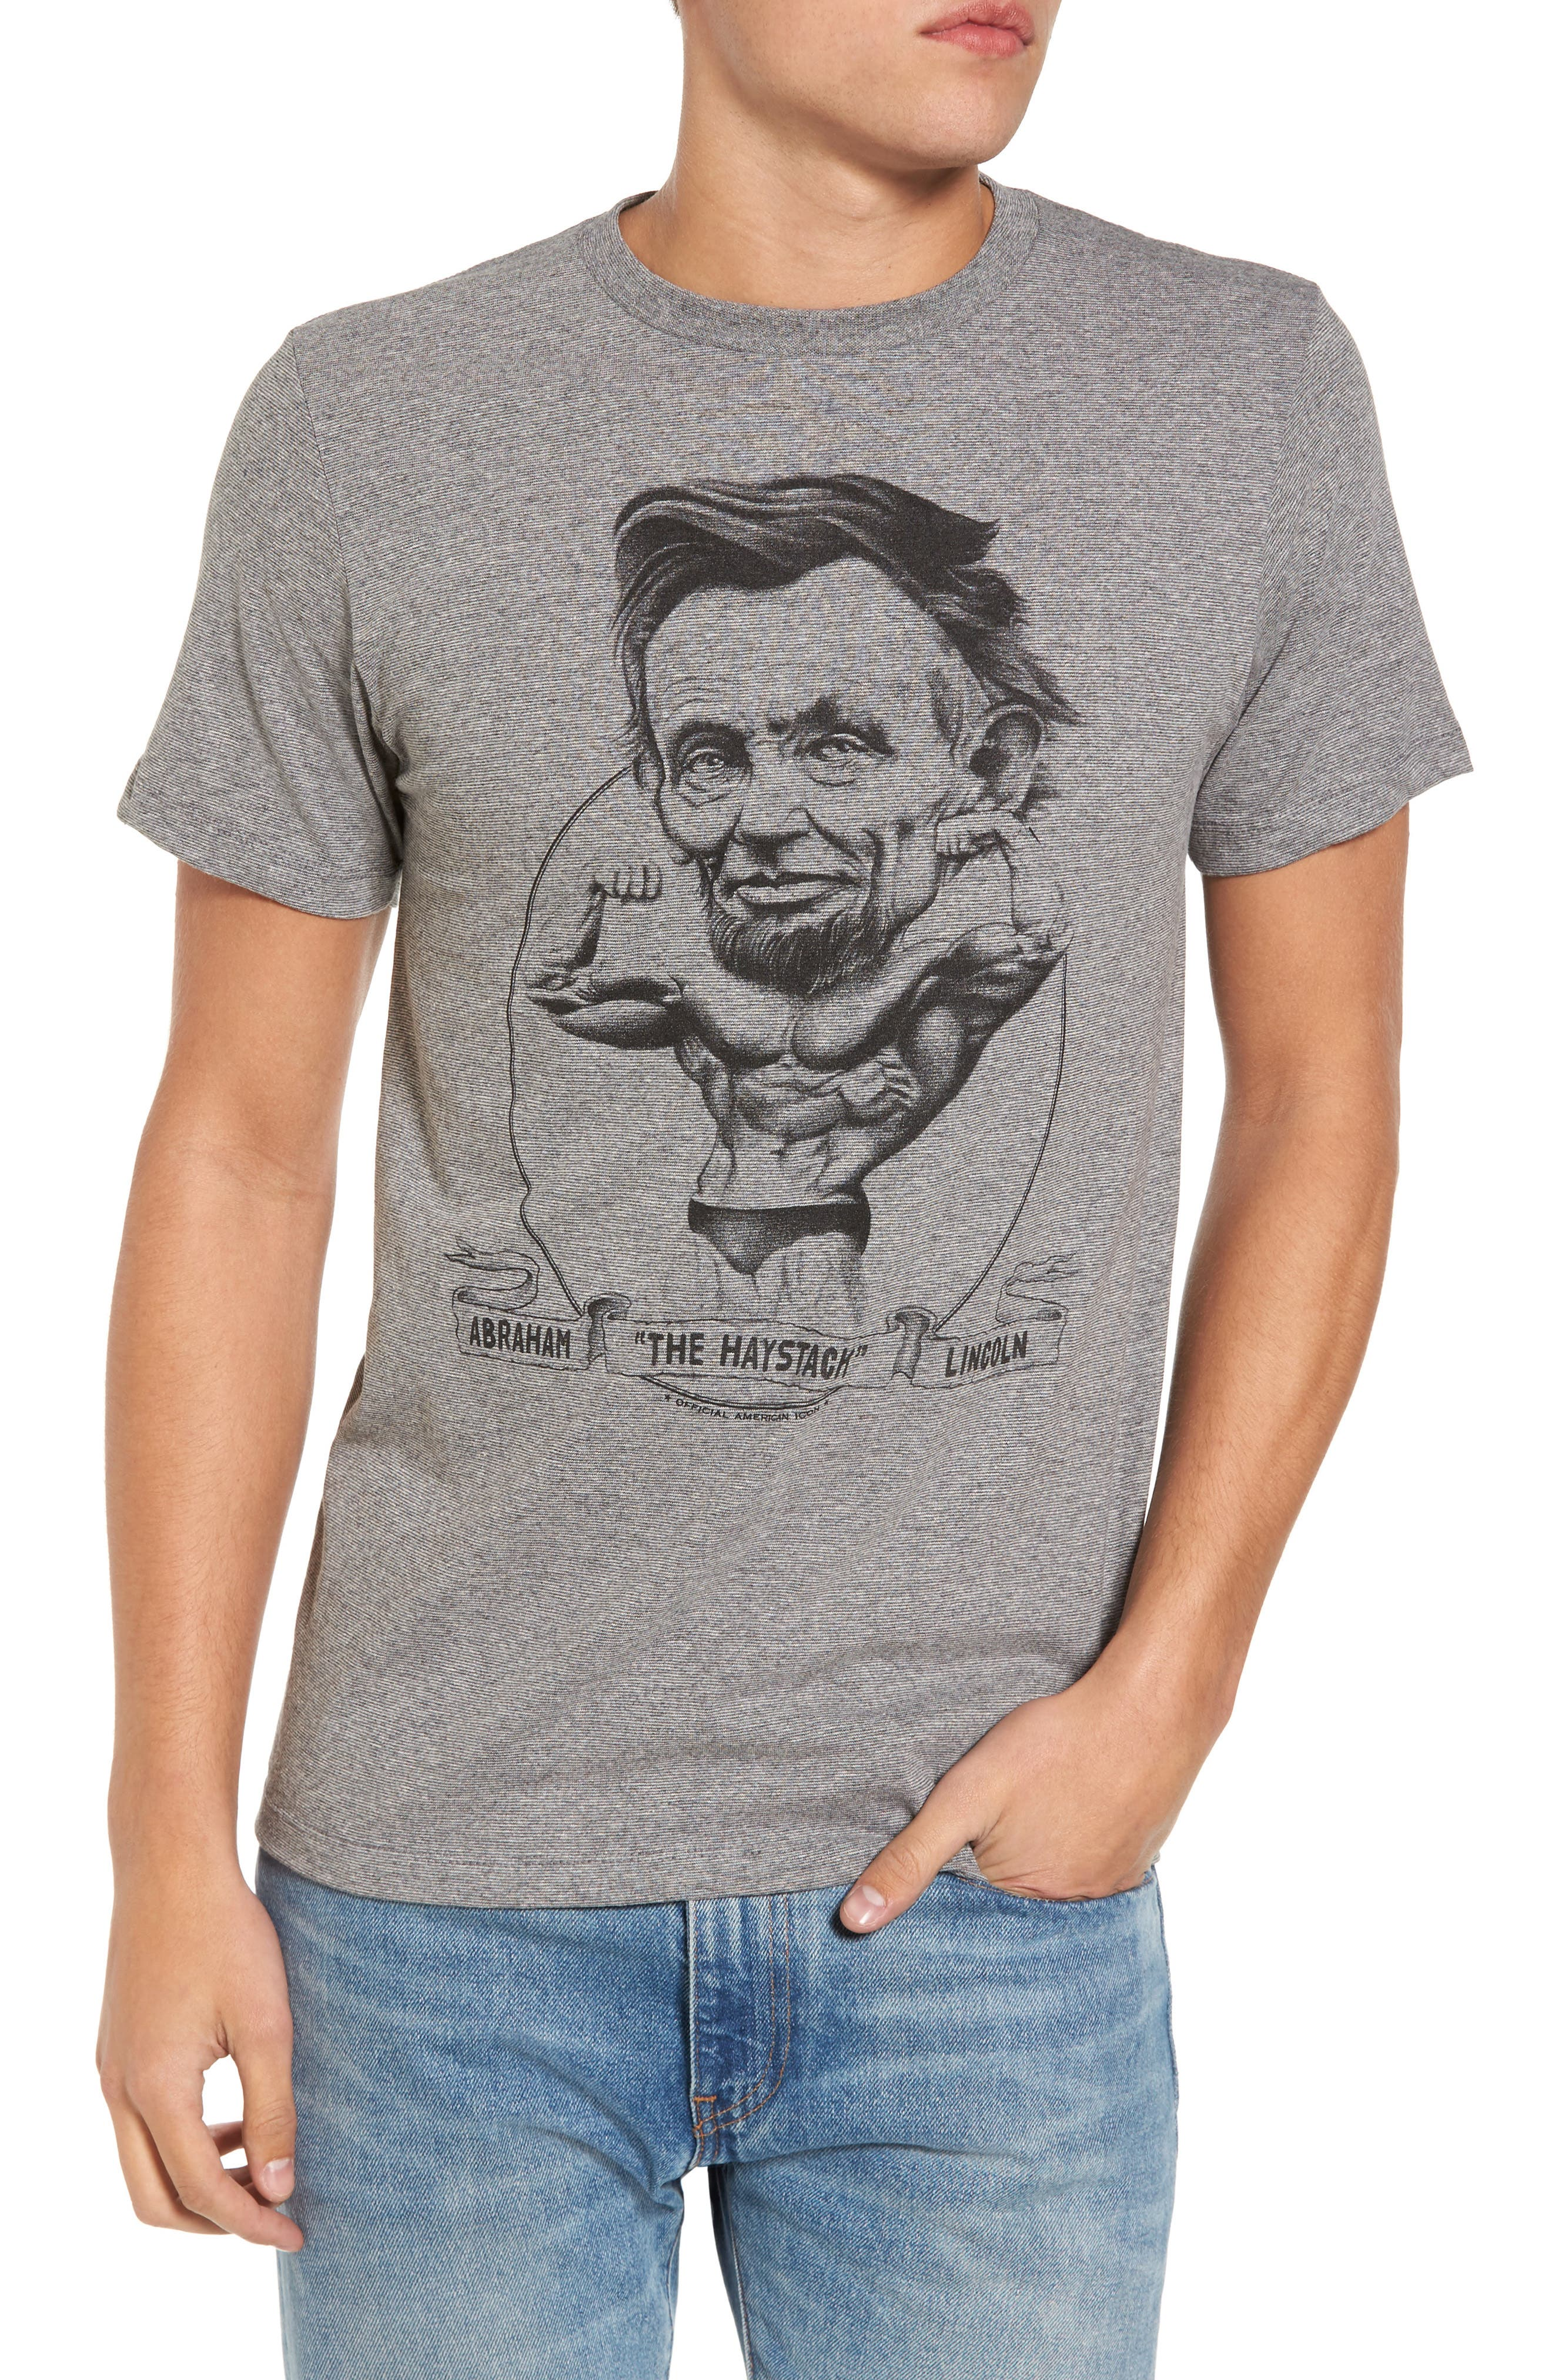 The Rail Abe Lincoln T-Shirt